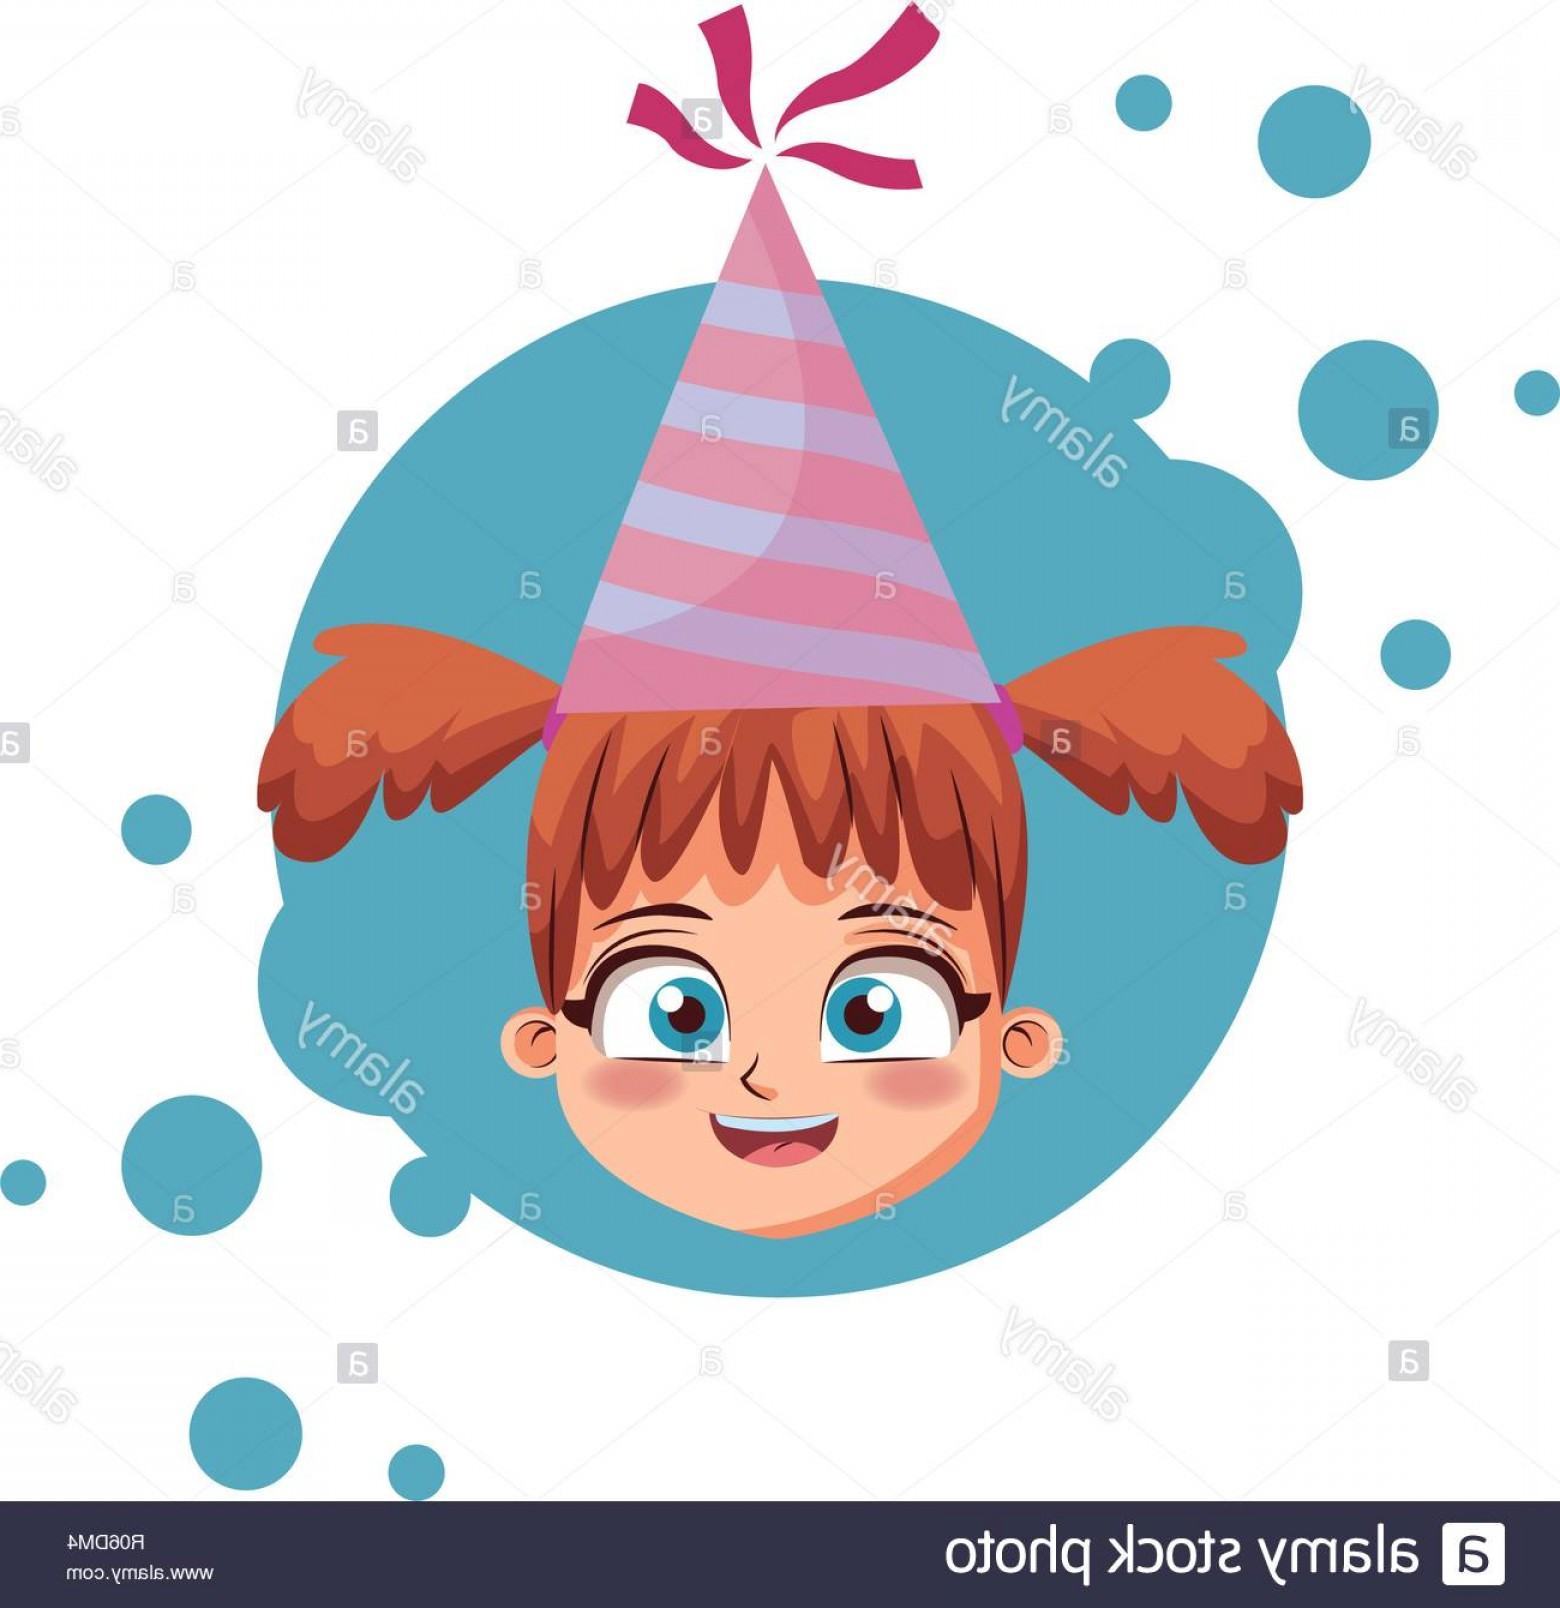 Teal Birthday Hat Vector: Girl With Birthday Hat Cartoon Over Blue Grunge Background Vector Illustration Graphic Design Image